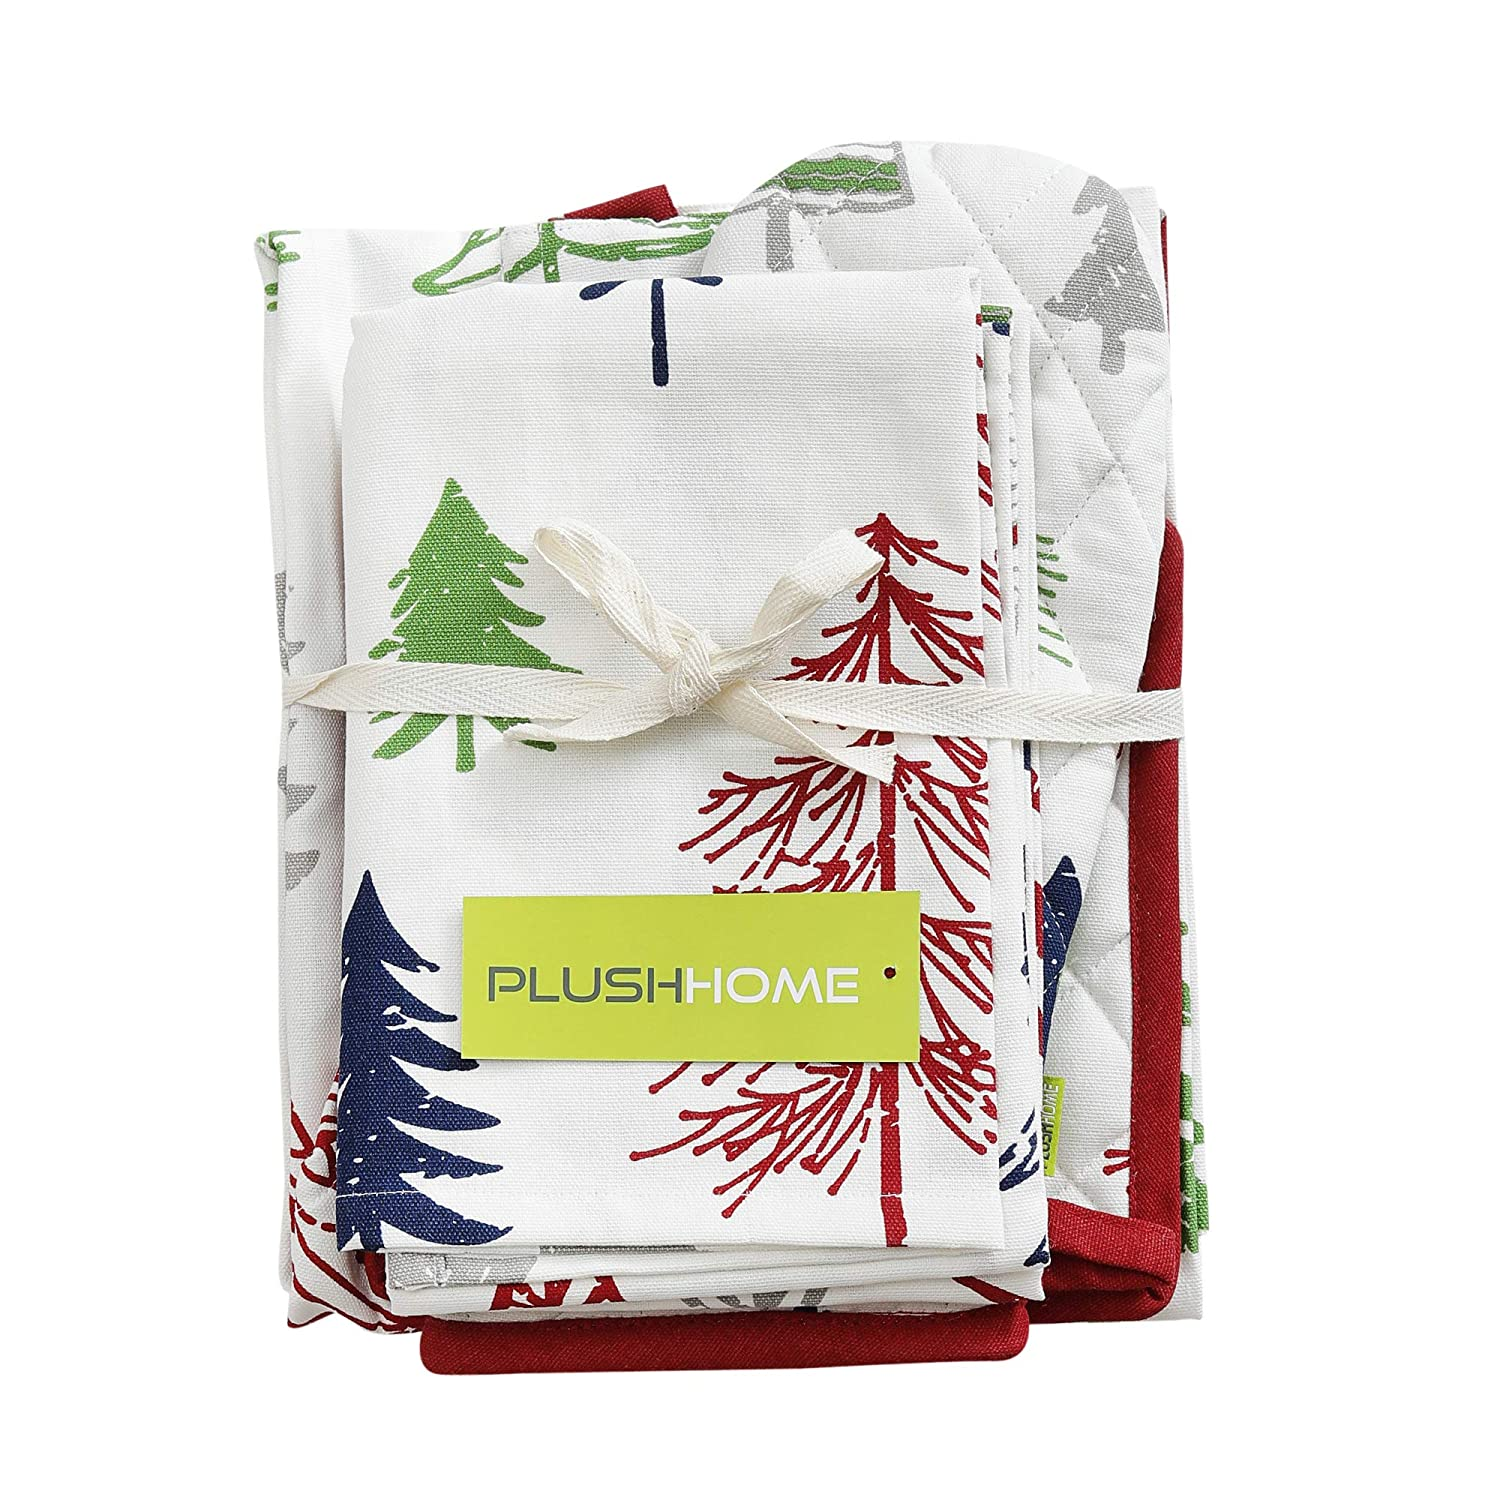 Potholder /& a Pair of Kitchen towel Kitchen combo Set-Christmas Forest design 100/% Cotton Thanks Giving Best for Gifting Oven Mitten Set of Kitchen Apron Christmas /& other festive Season